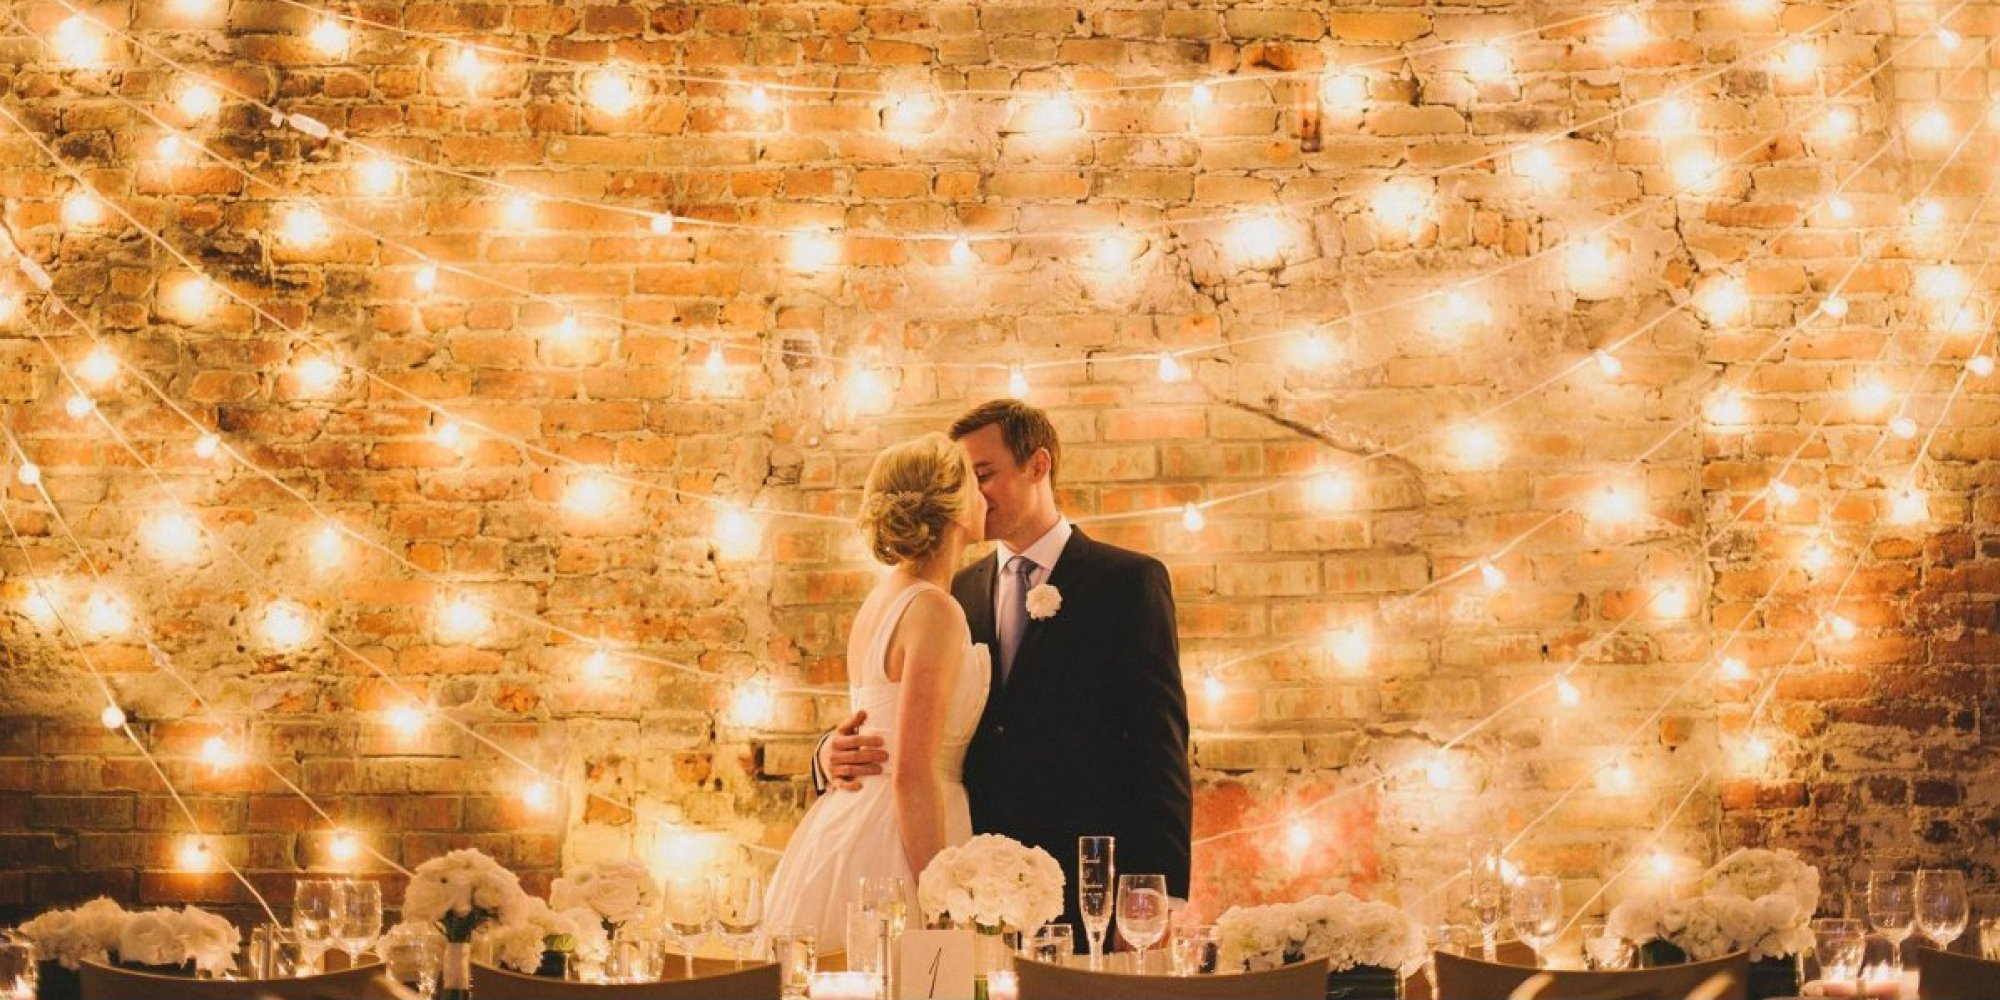 Wedding lighting ideas for receptions